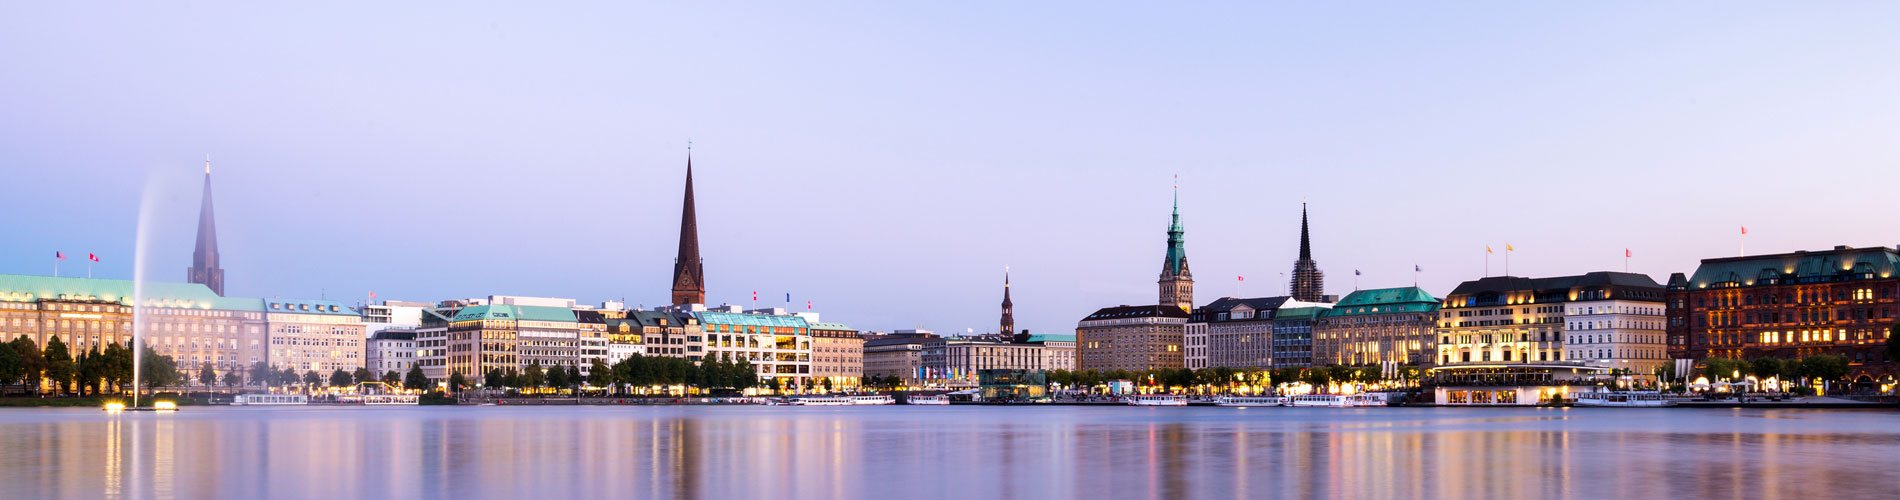 Hamburg Alster view Panorama